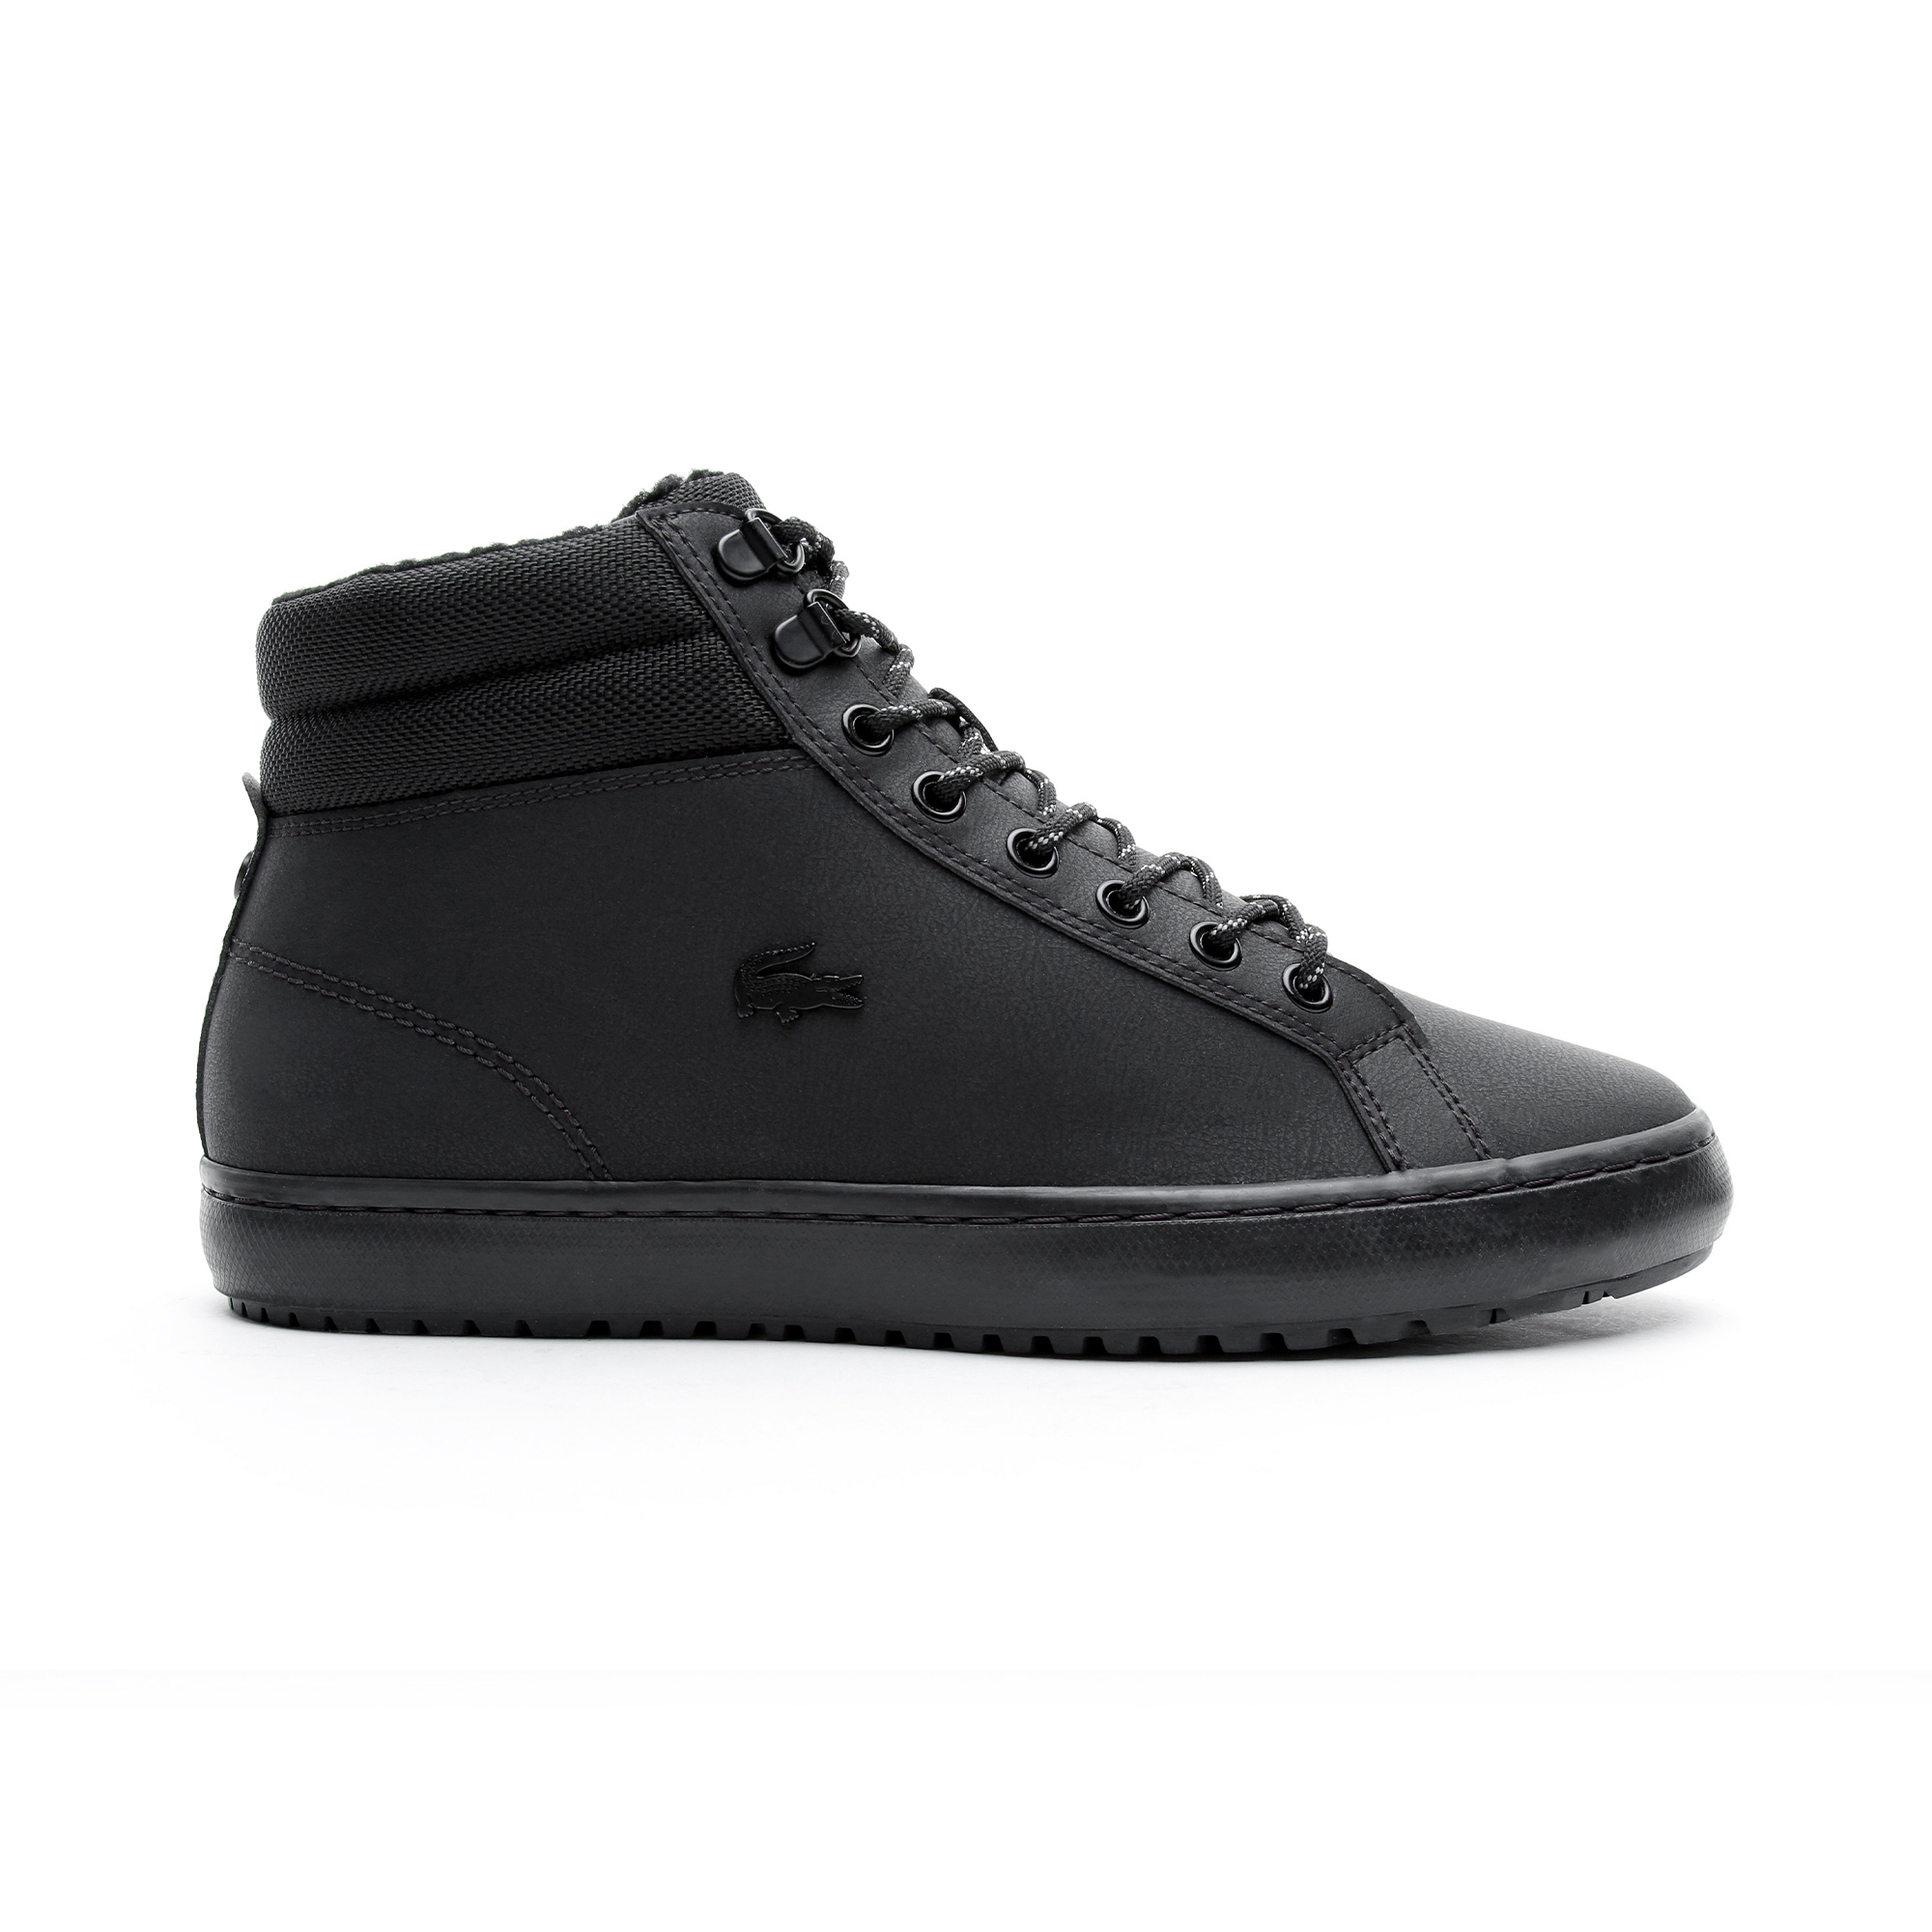 Lacoste Straightset Thermo 419 2 Męskie Buty